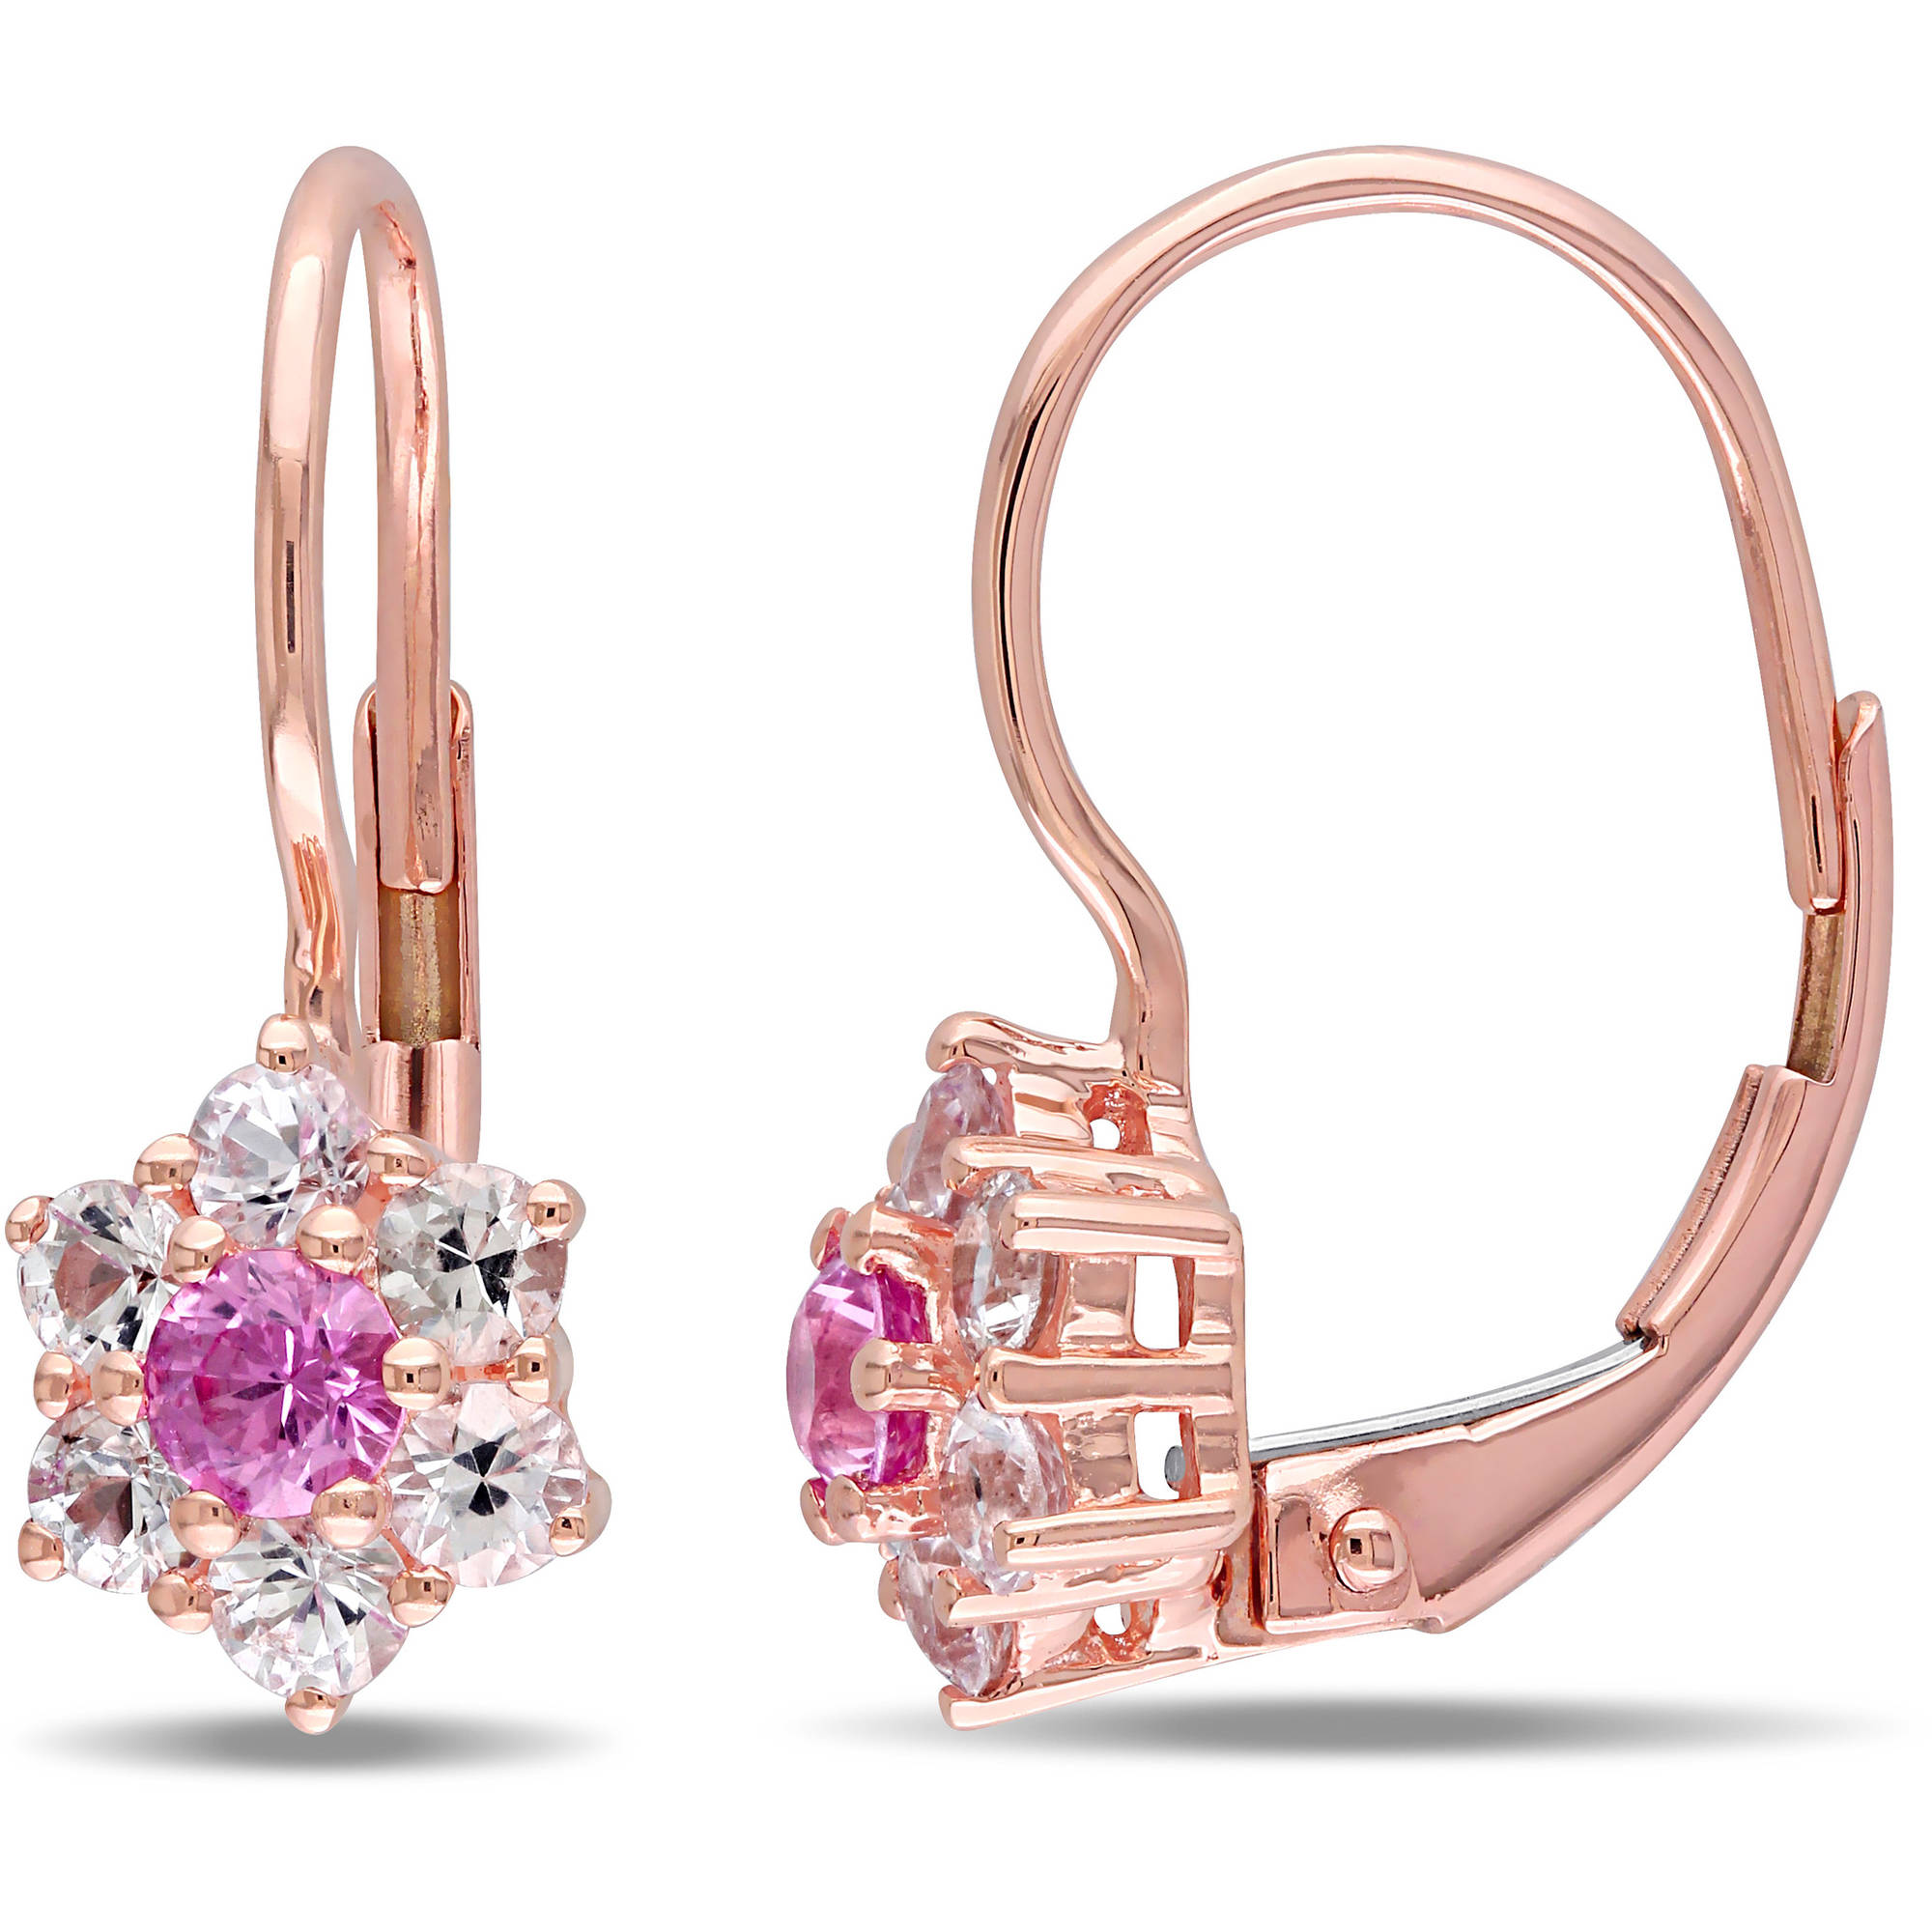 Tangelo 1 Carat T.G.W. Pink and White Sapphire 10kt Rose Gold Flower Halo Leverback Earrings by Tangelo